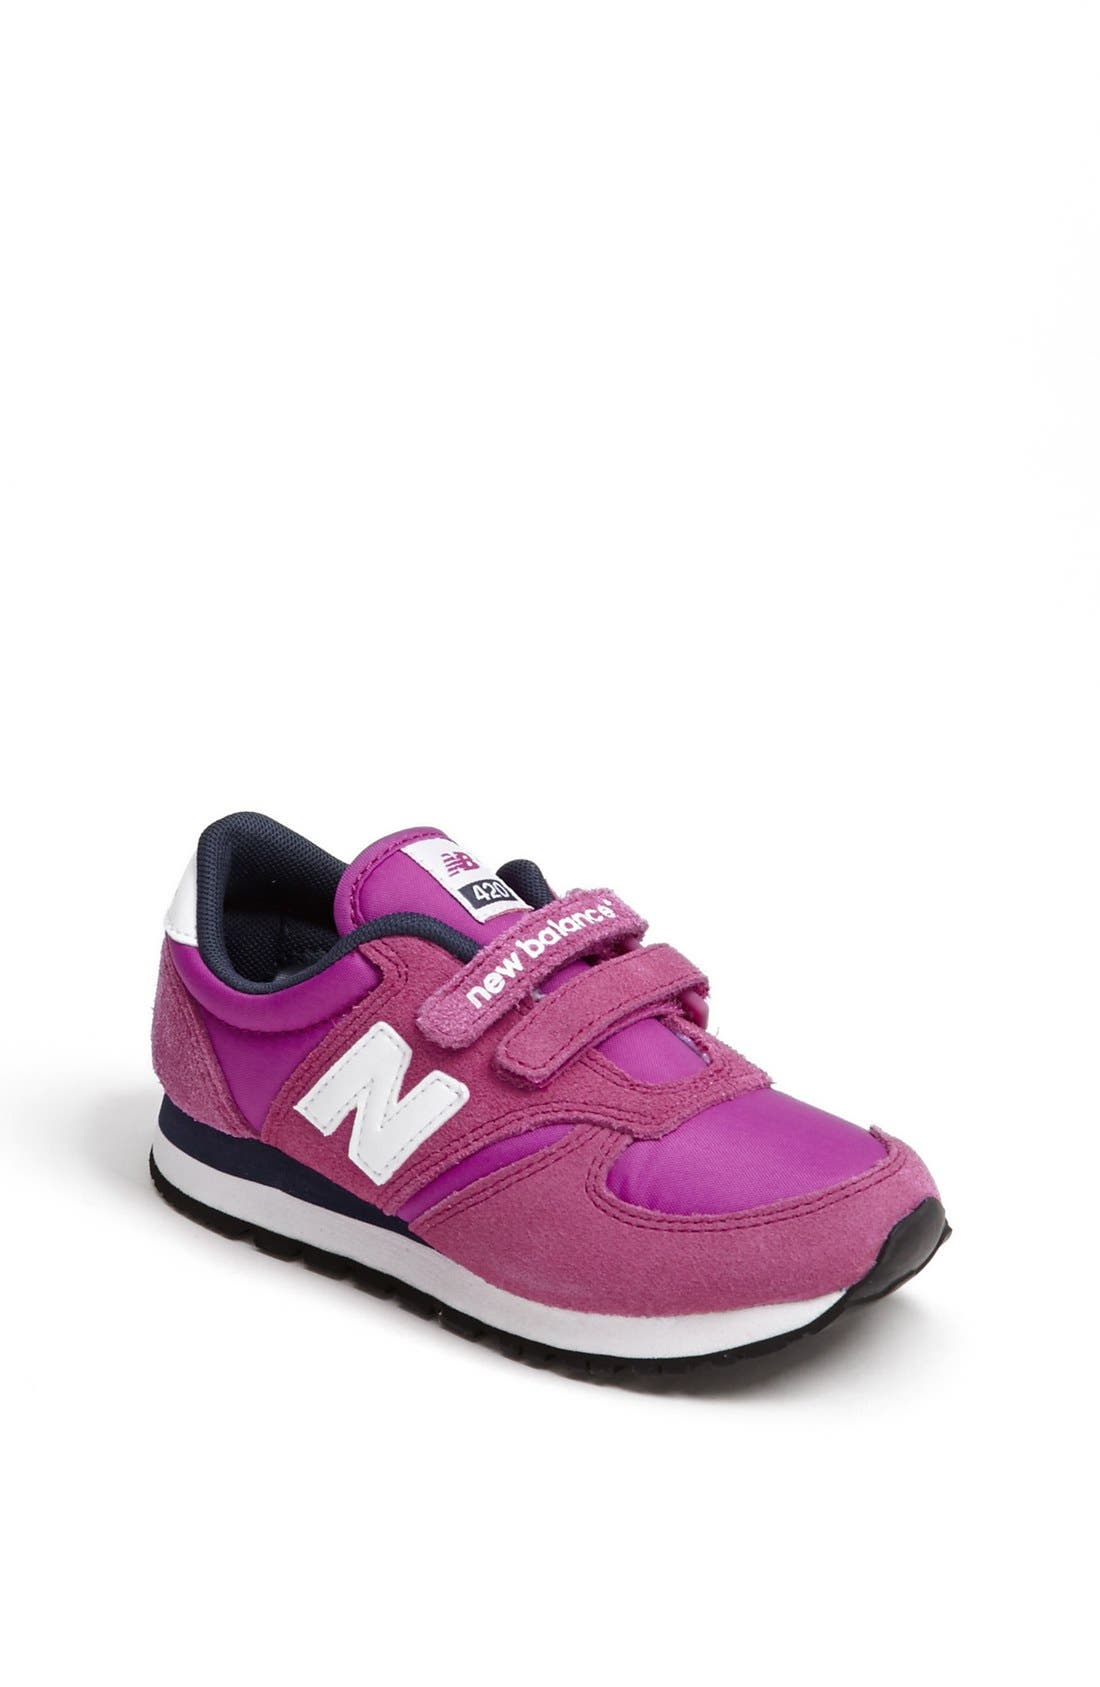 Alternate Image 1 Selected - New Balance '420 Take Down' Sneaker (Toddler, Little Kid & Big Kid)